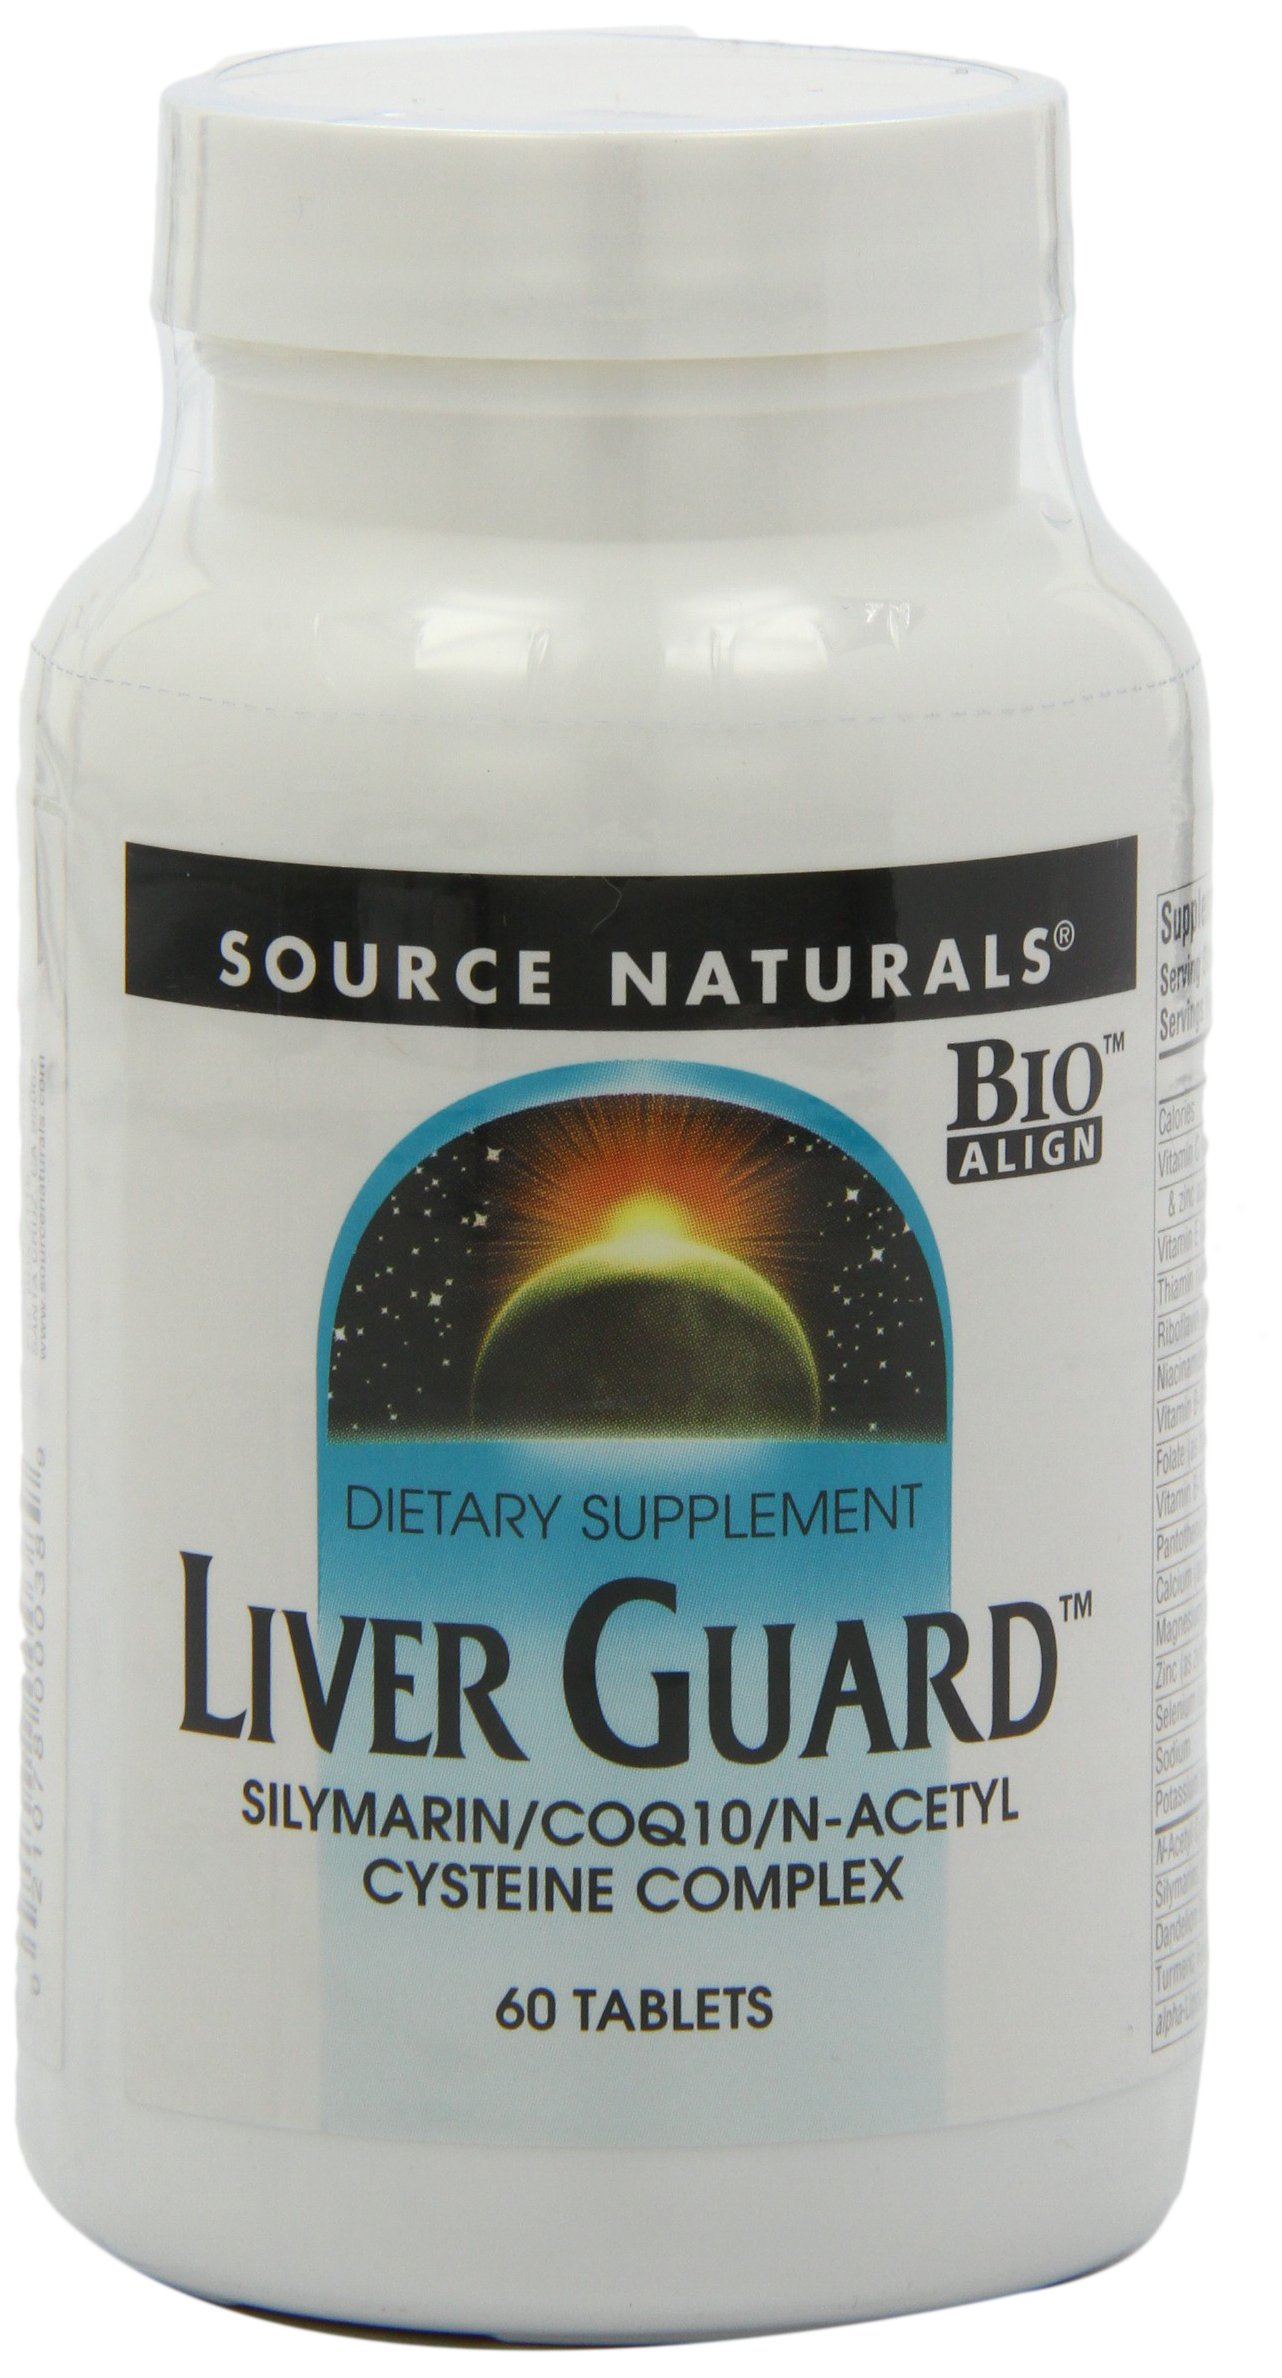 Source Naturals Liver Guard - Silymarin, CoQ10, N-Acetyl Cysteine Complex - 60 Tablets by Source Naturals